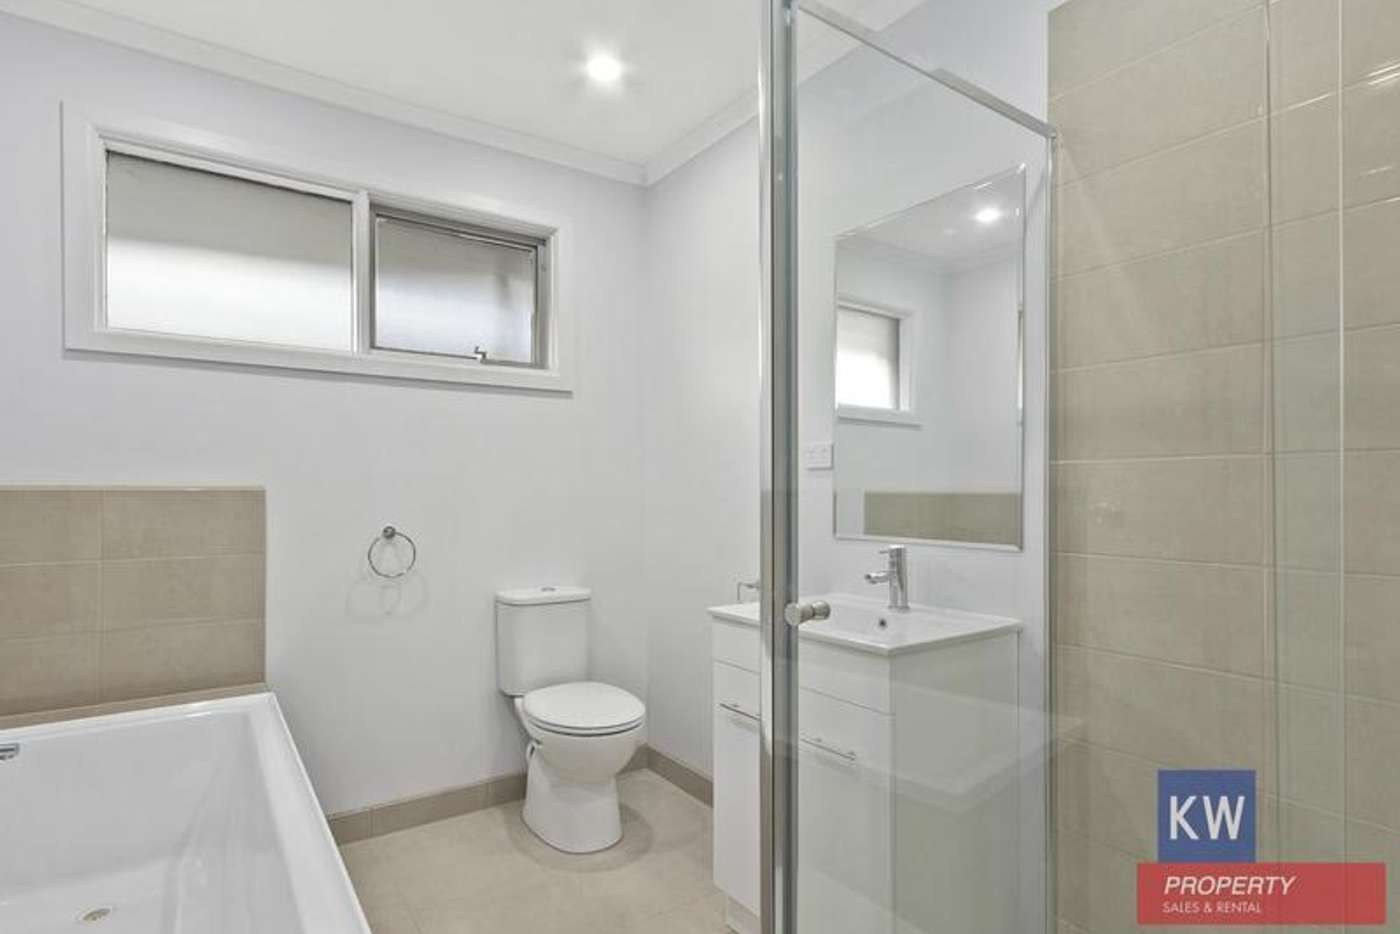 Seventh view of Homely house listing, 79 The Avenue, Morwell VIC 3840